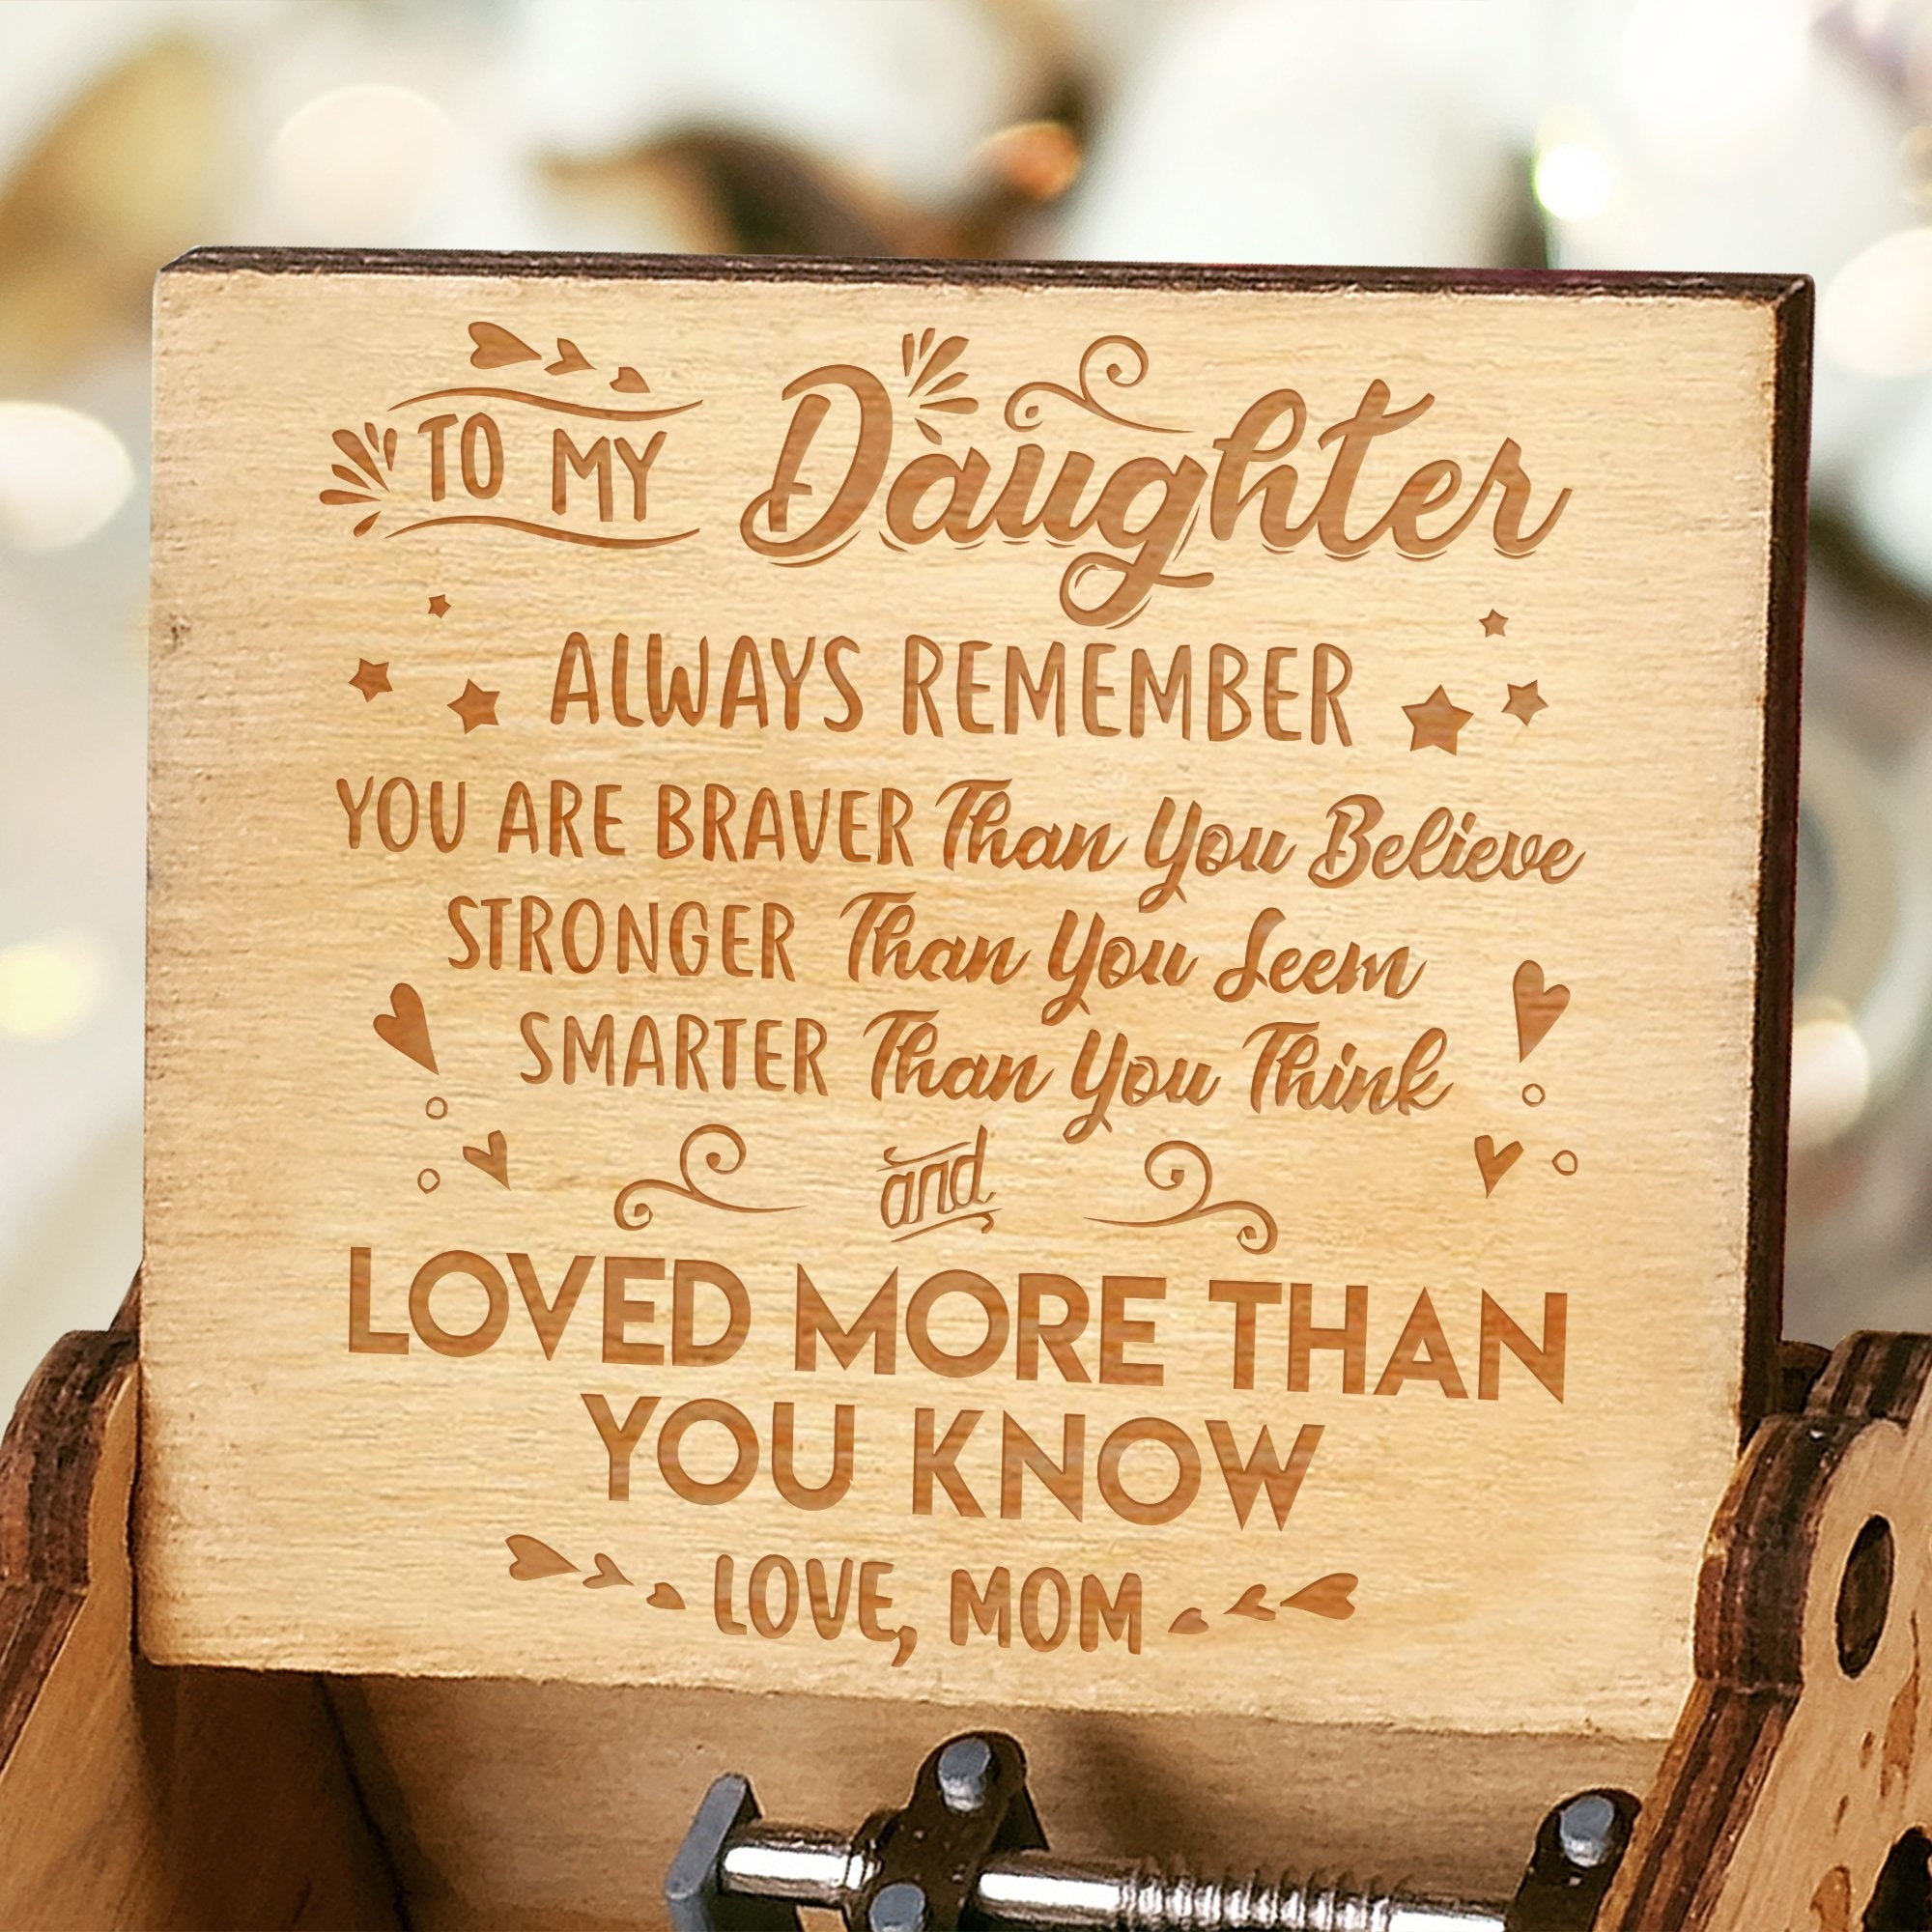 Mom To Daughter - You Are Loved More Than You Know - Engraved Music Box